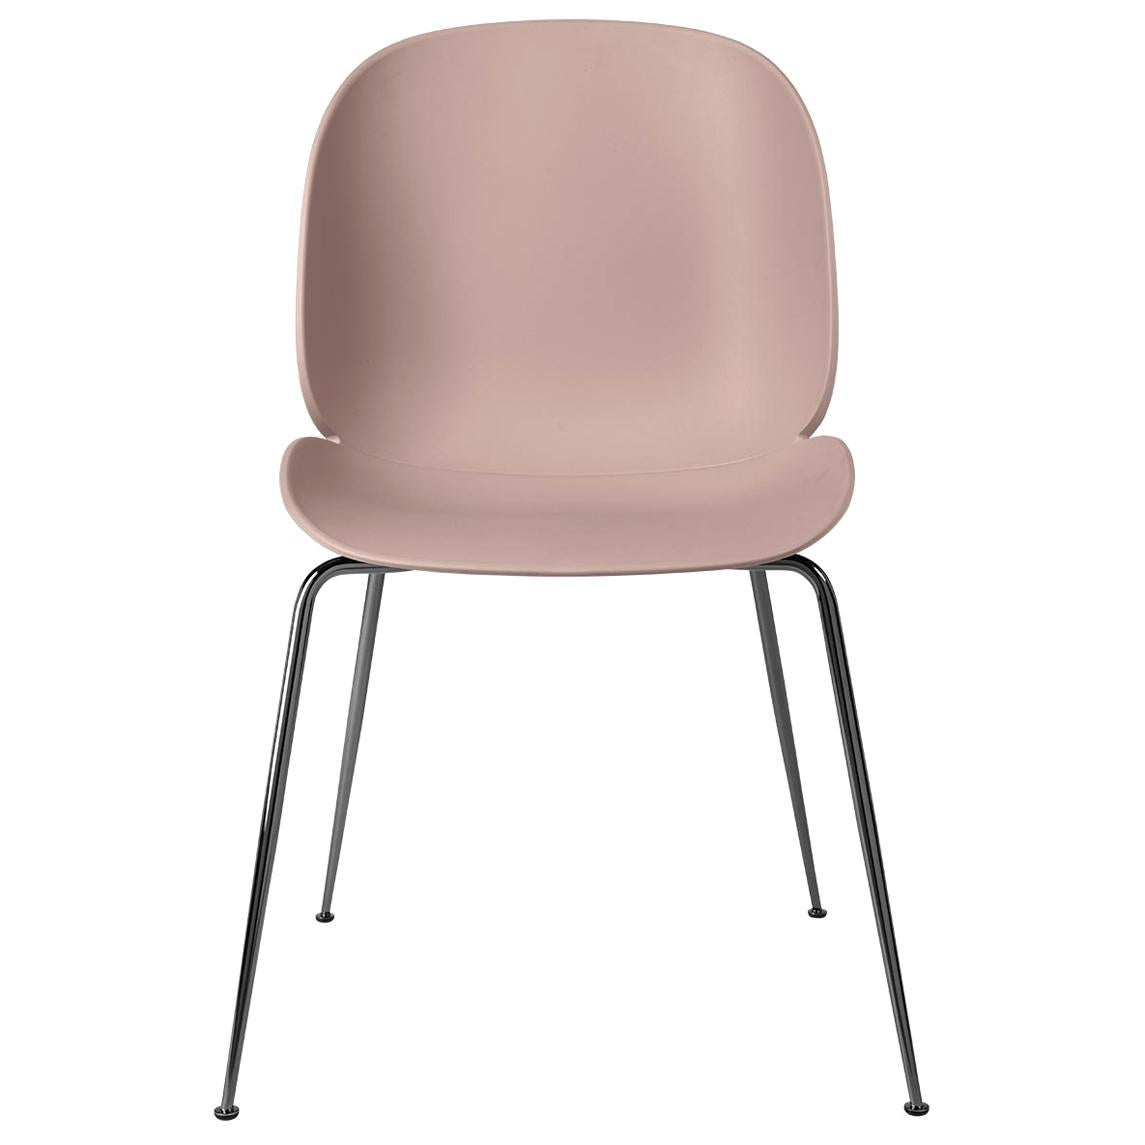 Beetle Dining Chair, Un-Upholstered, Conic Base, Black Chrome